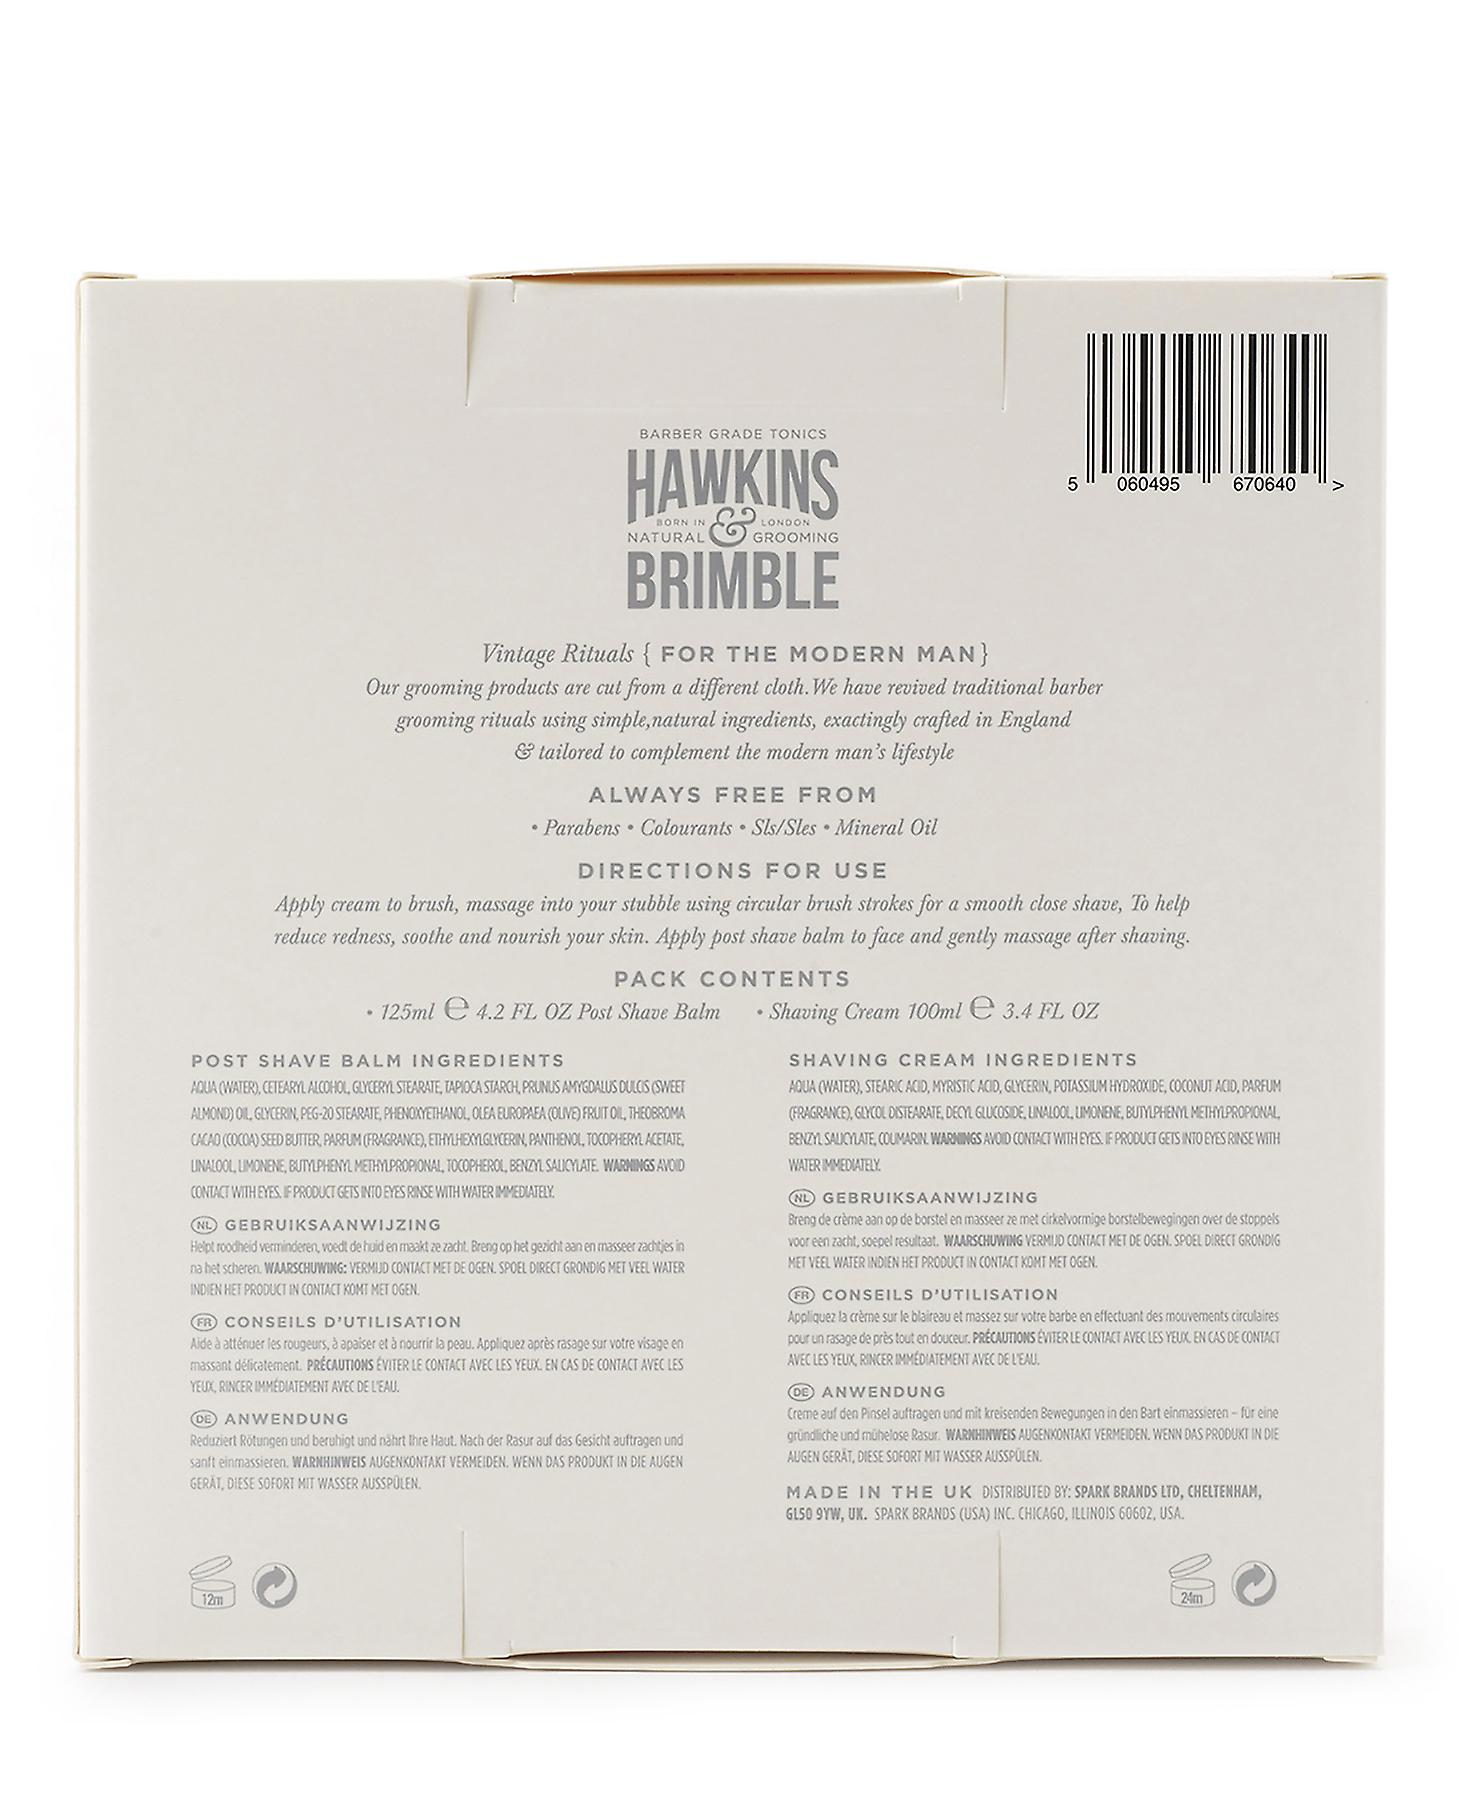 Hawkins & Brimble Grooming Gift Set 2pc (Shave Cream & Post Shave Balm)